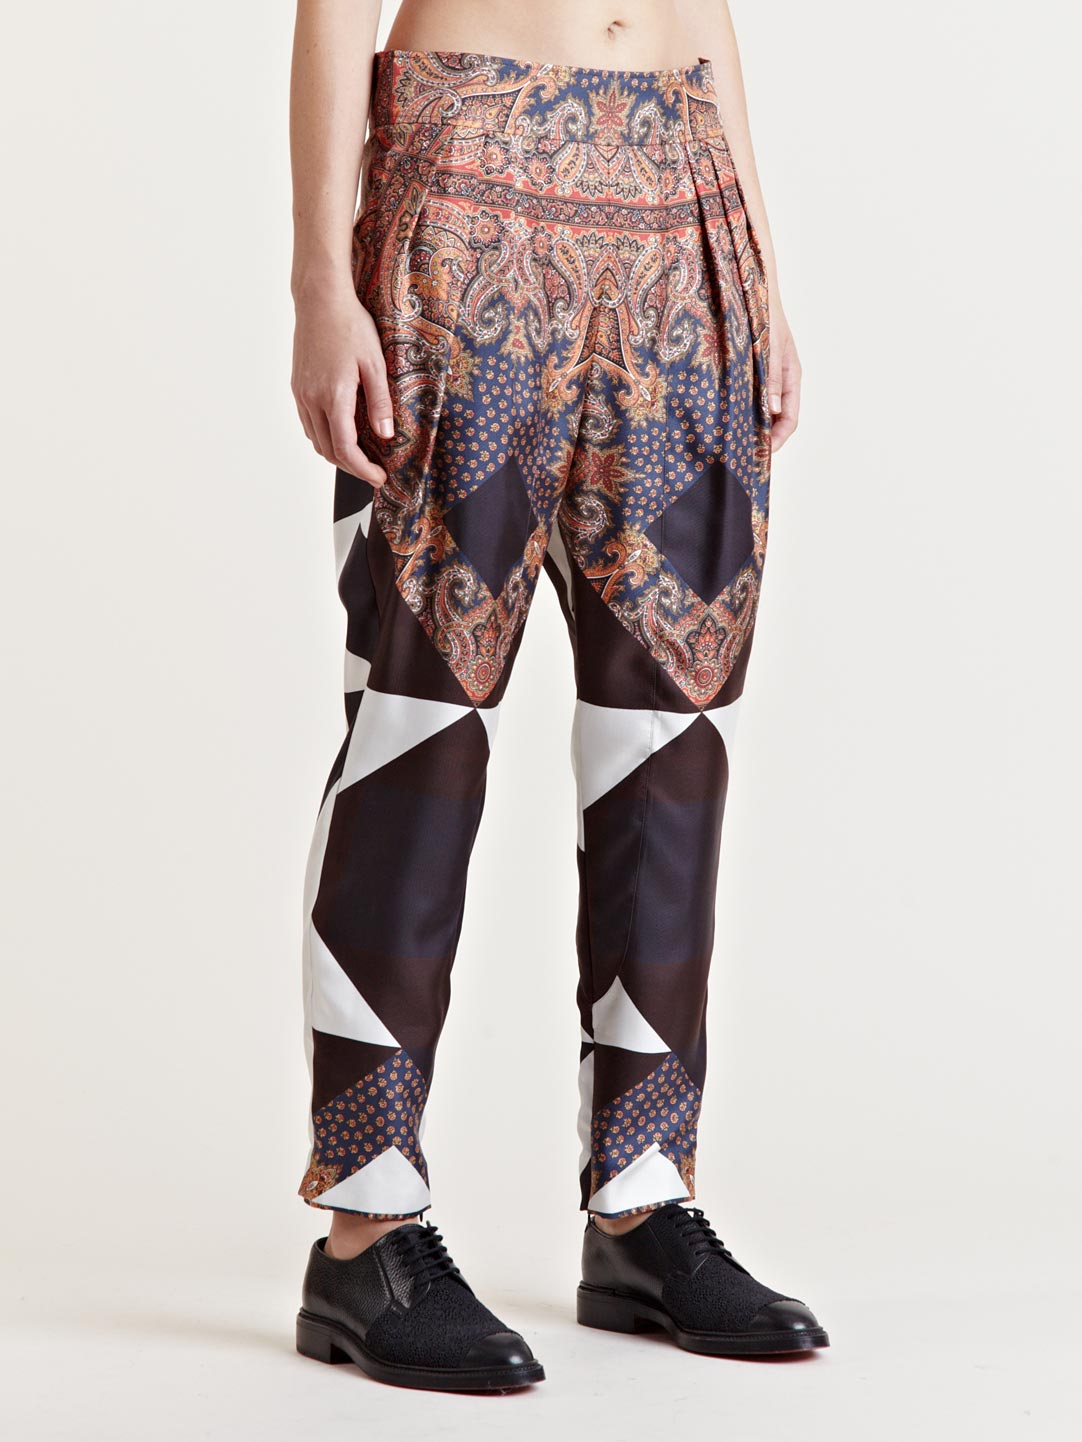 Givenchy Womens Silk Patterned Pants In Multicolor Multi